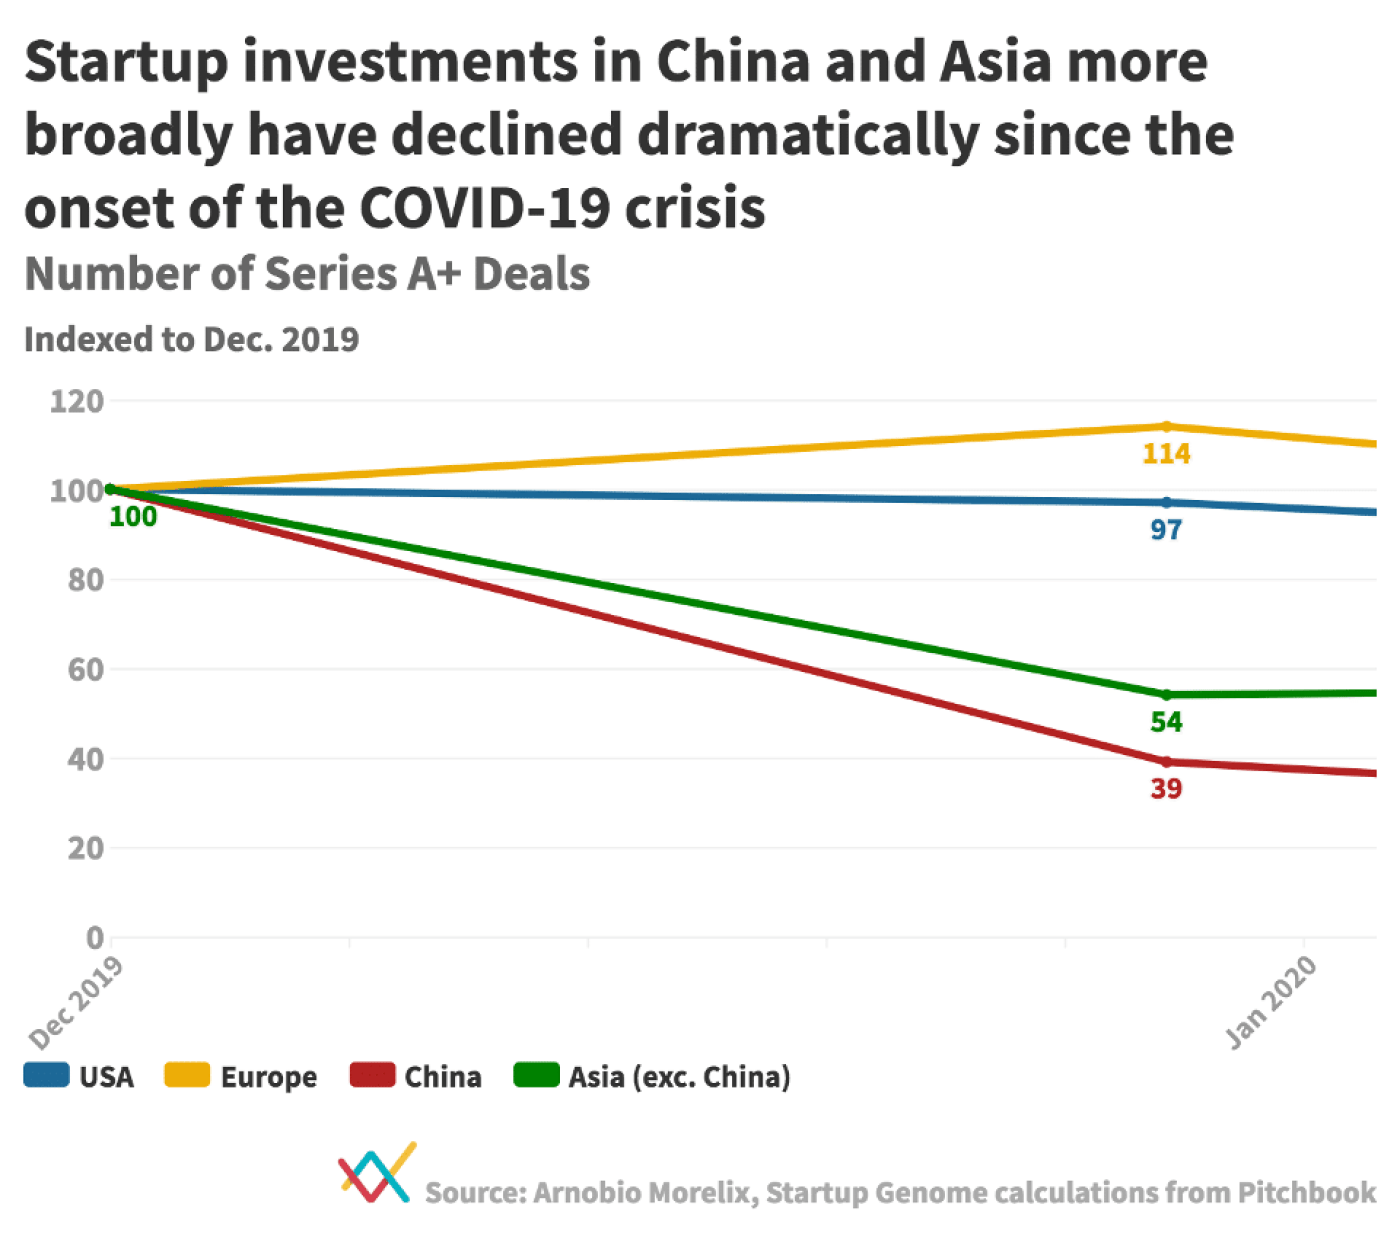 Number of VC deals in China and Asia fell dramatically as COVID-19 worsened.